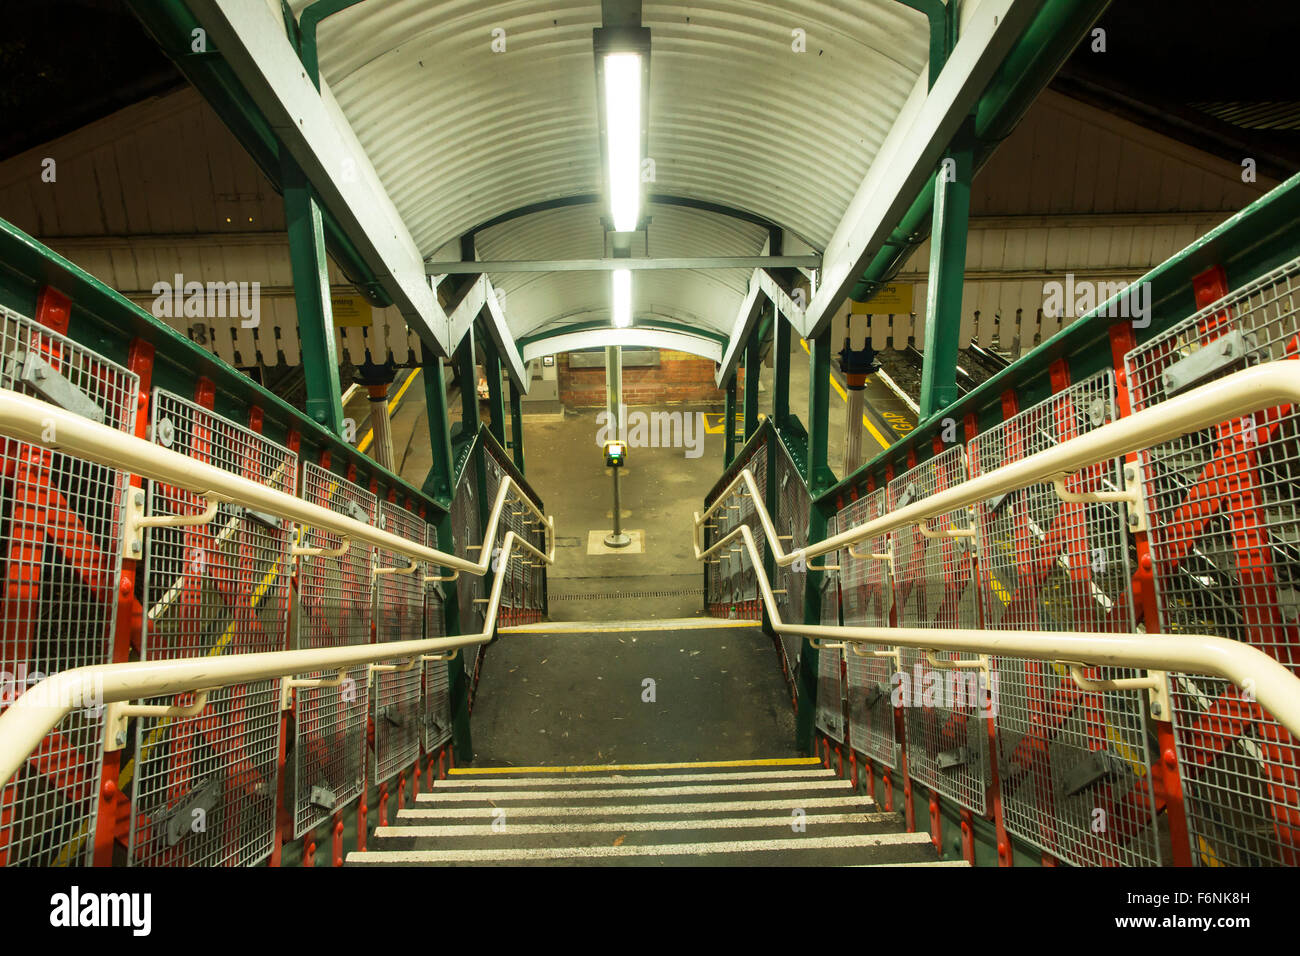 Stairs leading down to the platforms at St Denys railway station, Southampton, Hampshire, UK Stock Photo